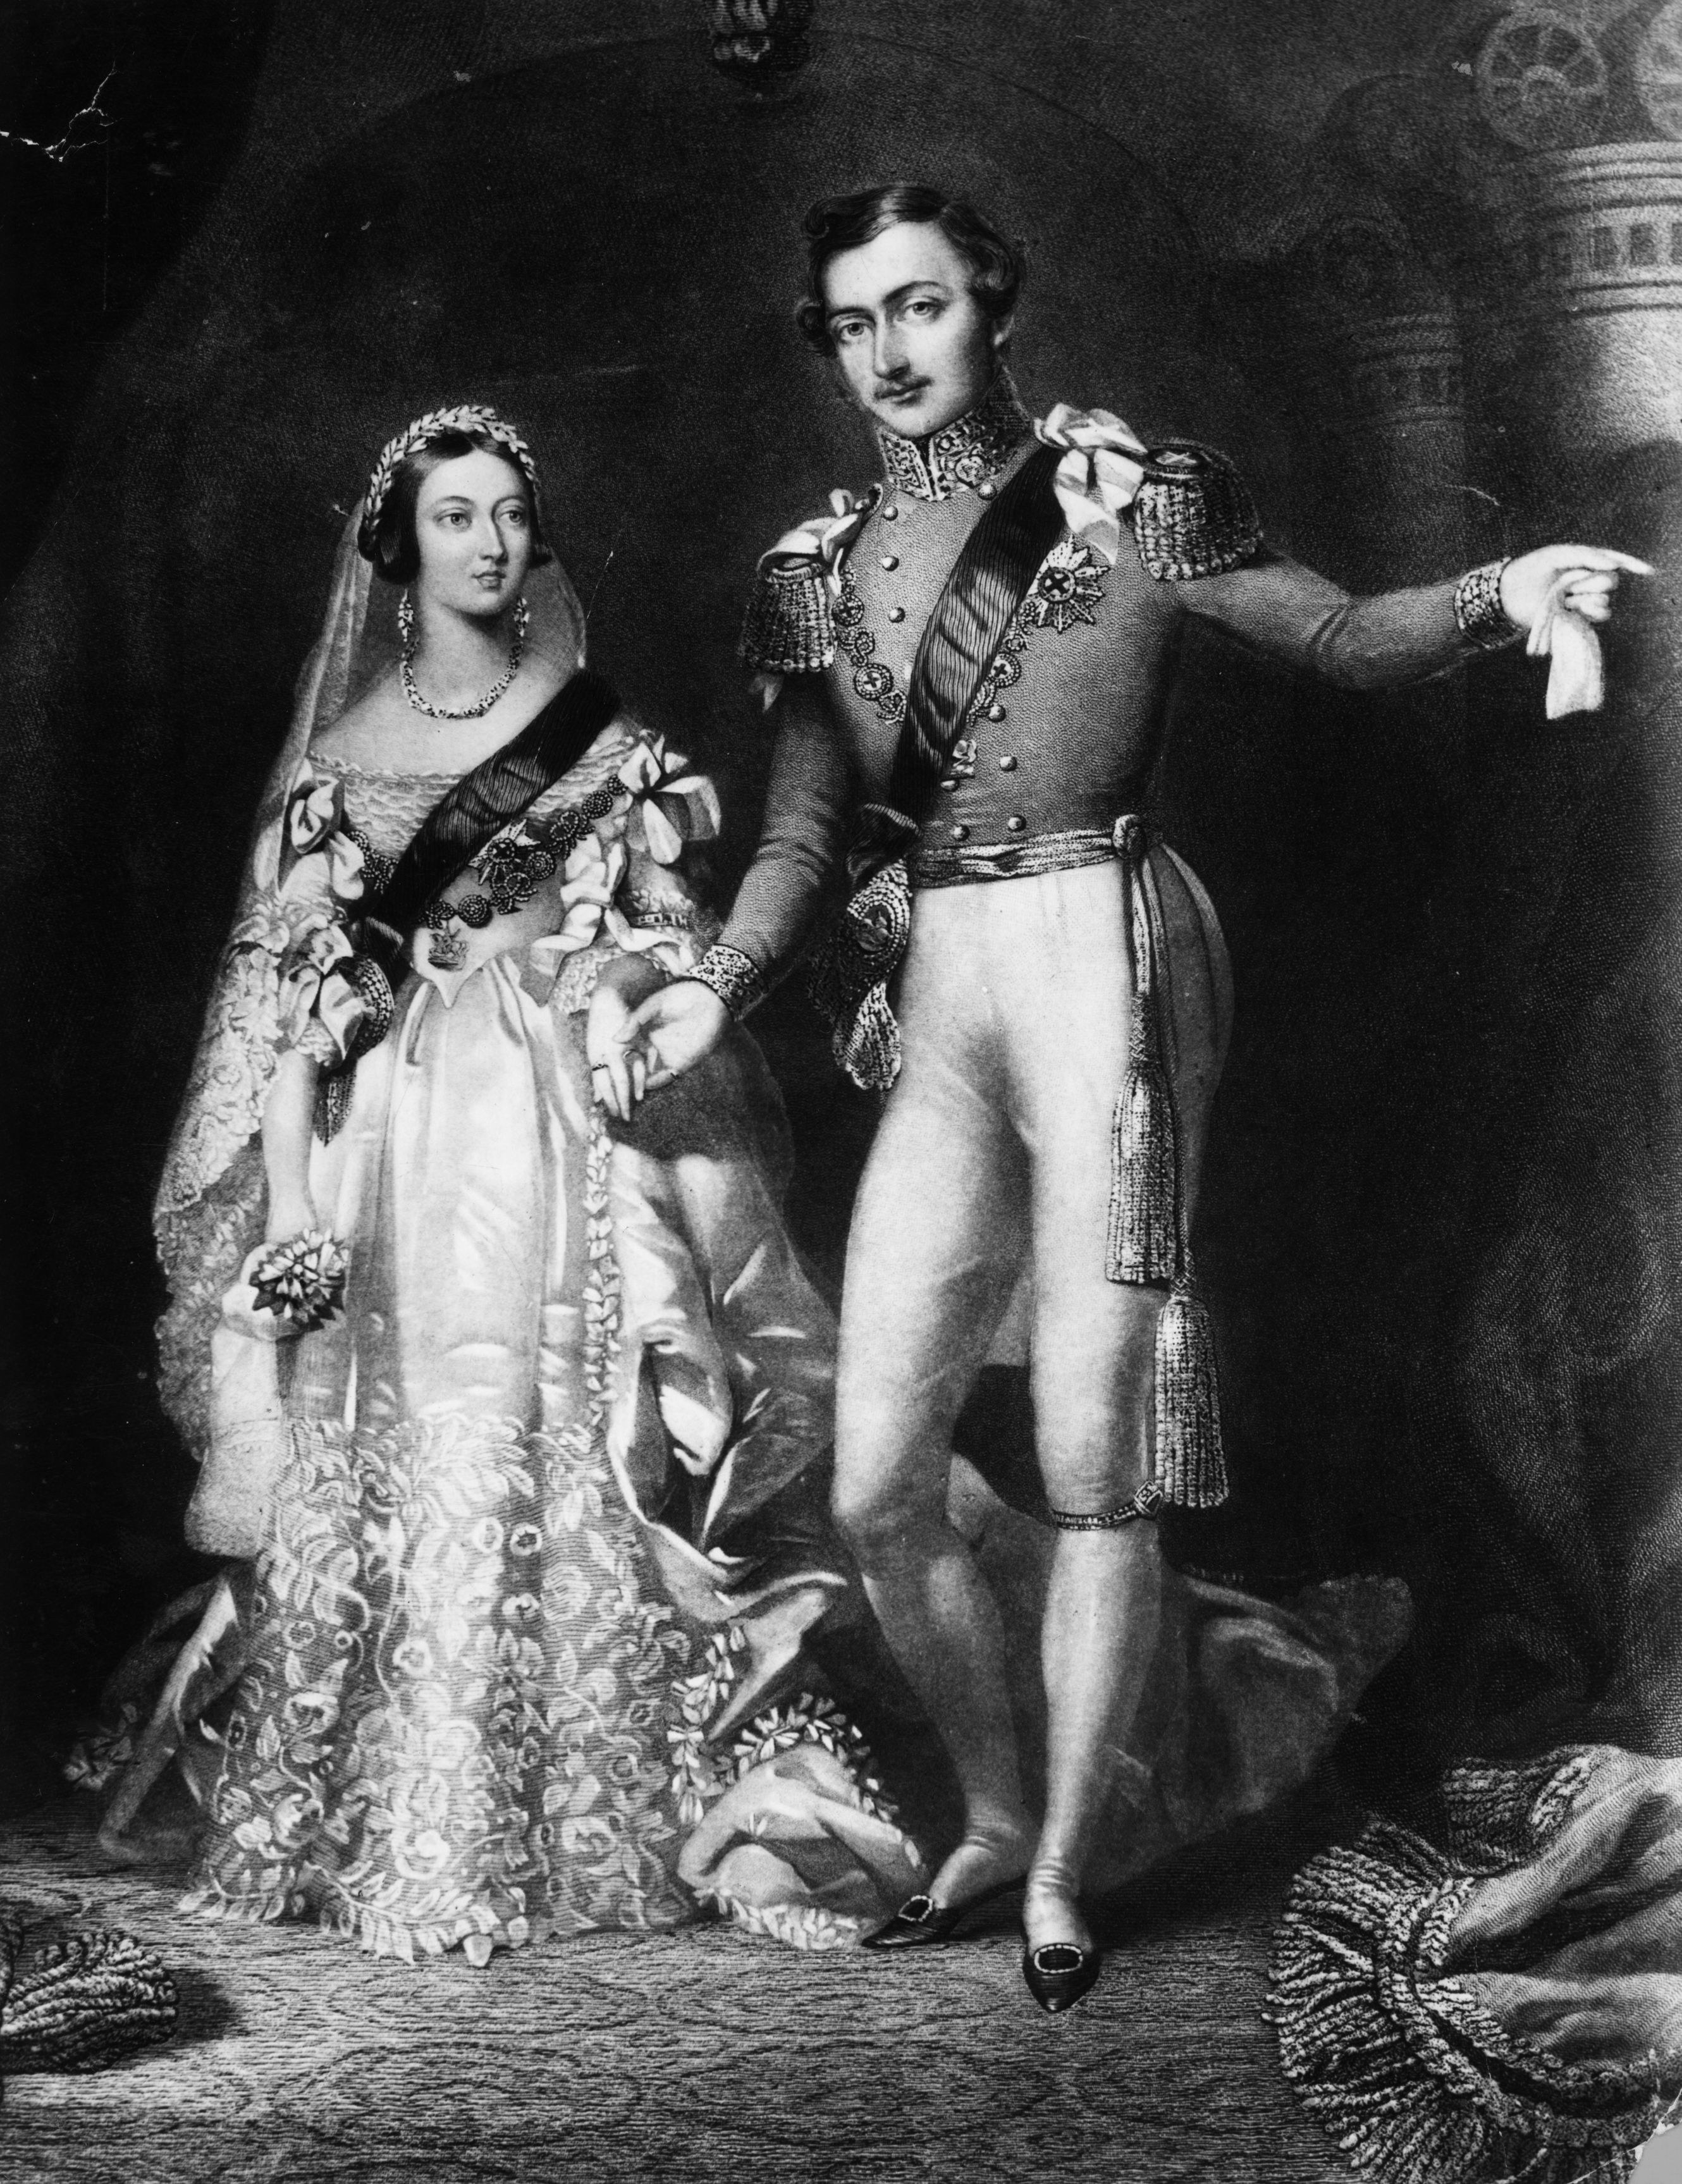 Queen Victoria and prince Albert returning from their marriage service